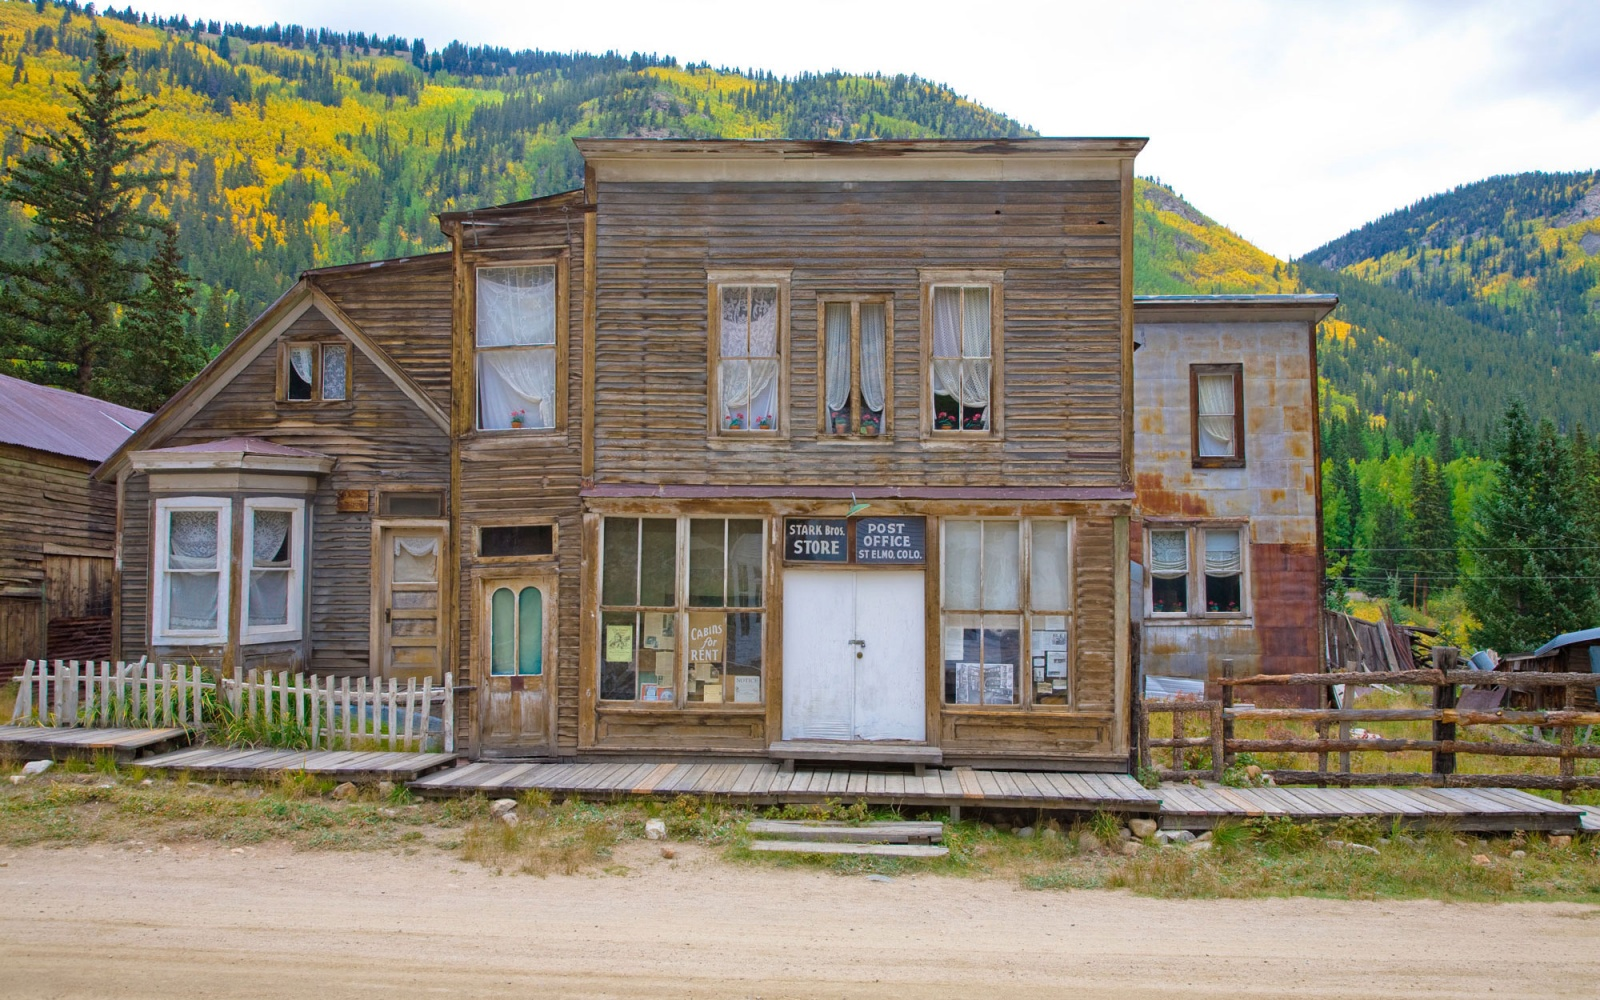 St. Elmo, Colorado